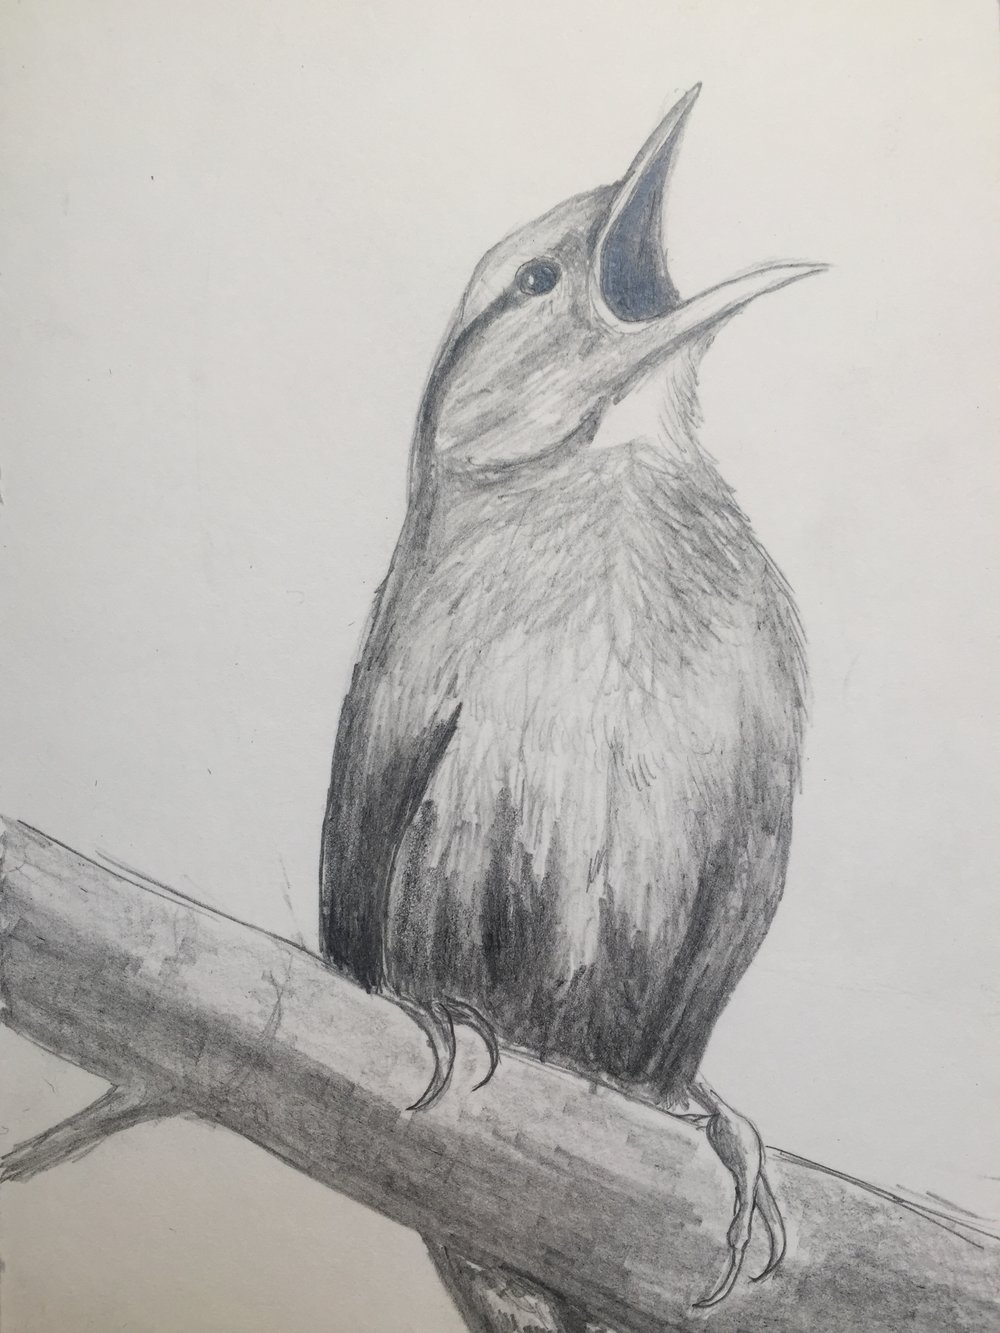 Birds artaday2017 art challenges art nature pencil drawingwendy wetherbee march 27 2017 brid drawing drawingaday2017 bird drawing graphite